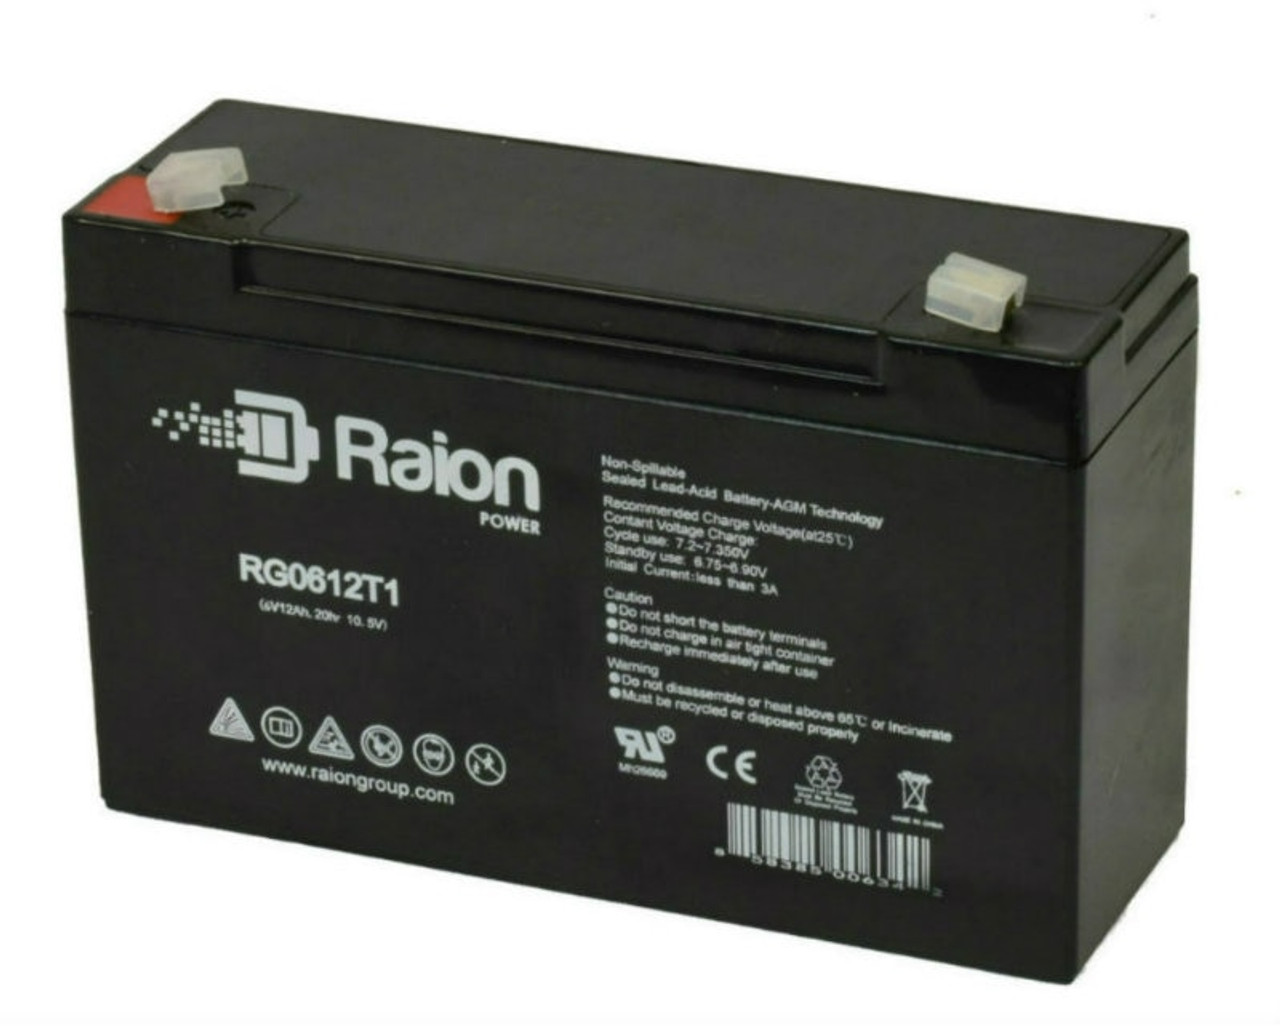 Raion Power RG06120T1 Replacement Battery Pack for Siltron PE680 emergency light